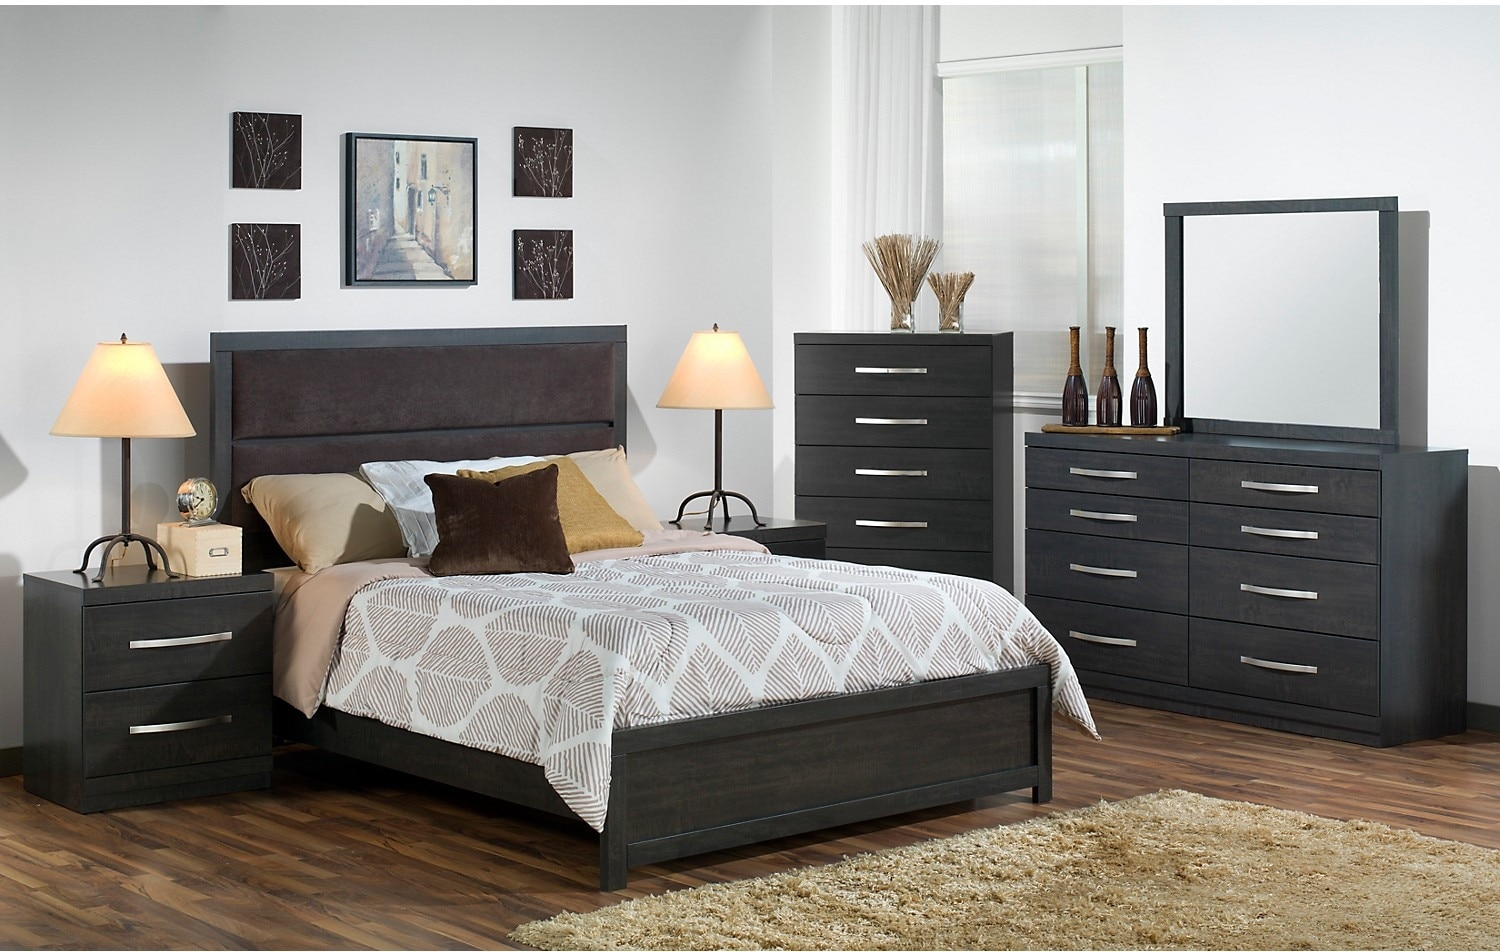 Bedroom Furniture - Willowdale King 8-Piece Bedroom Package